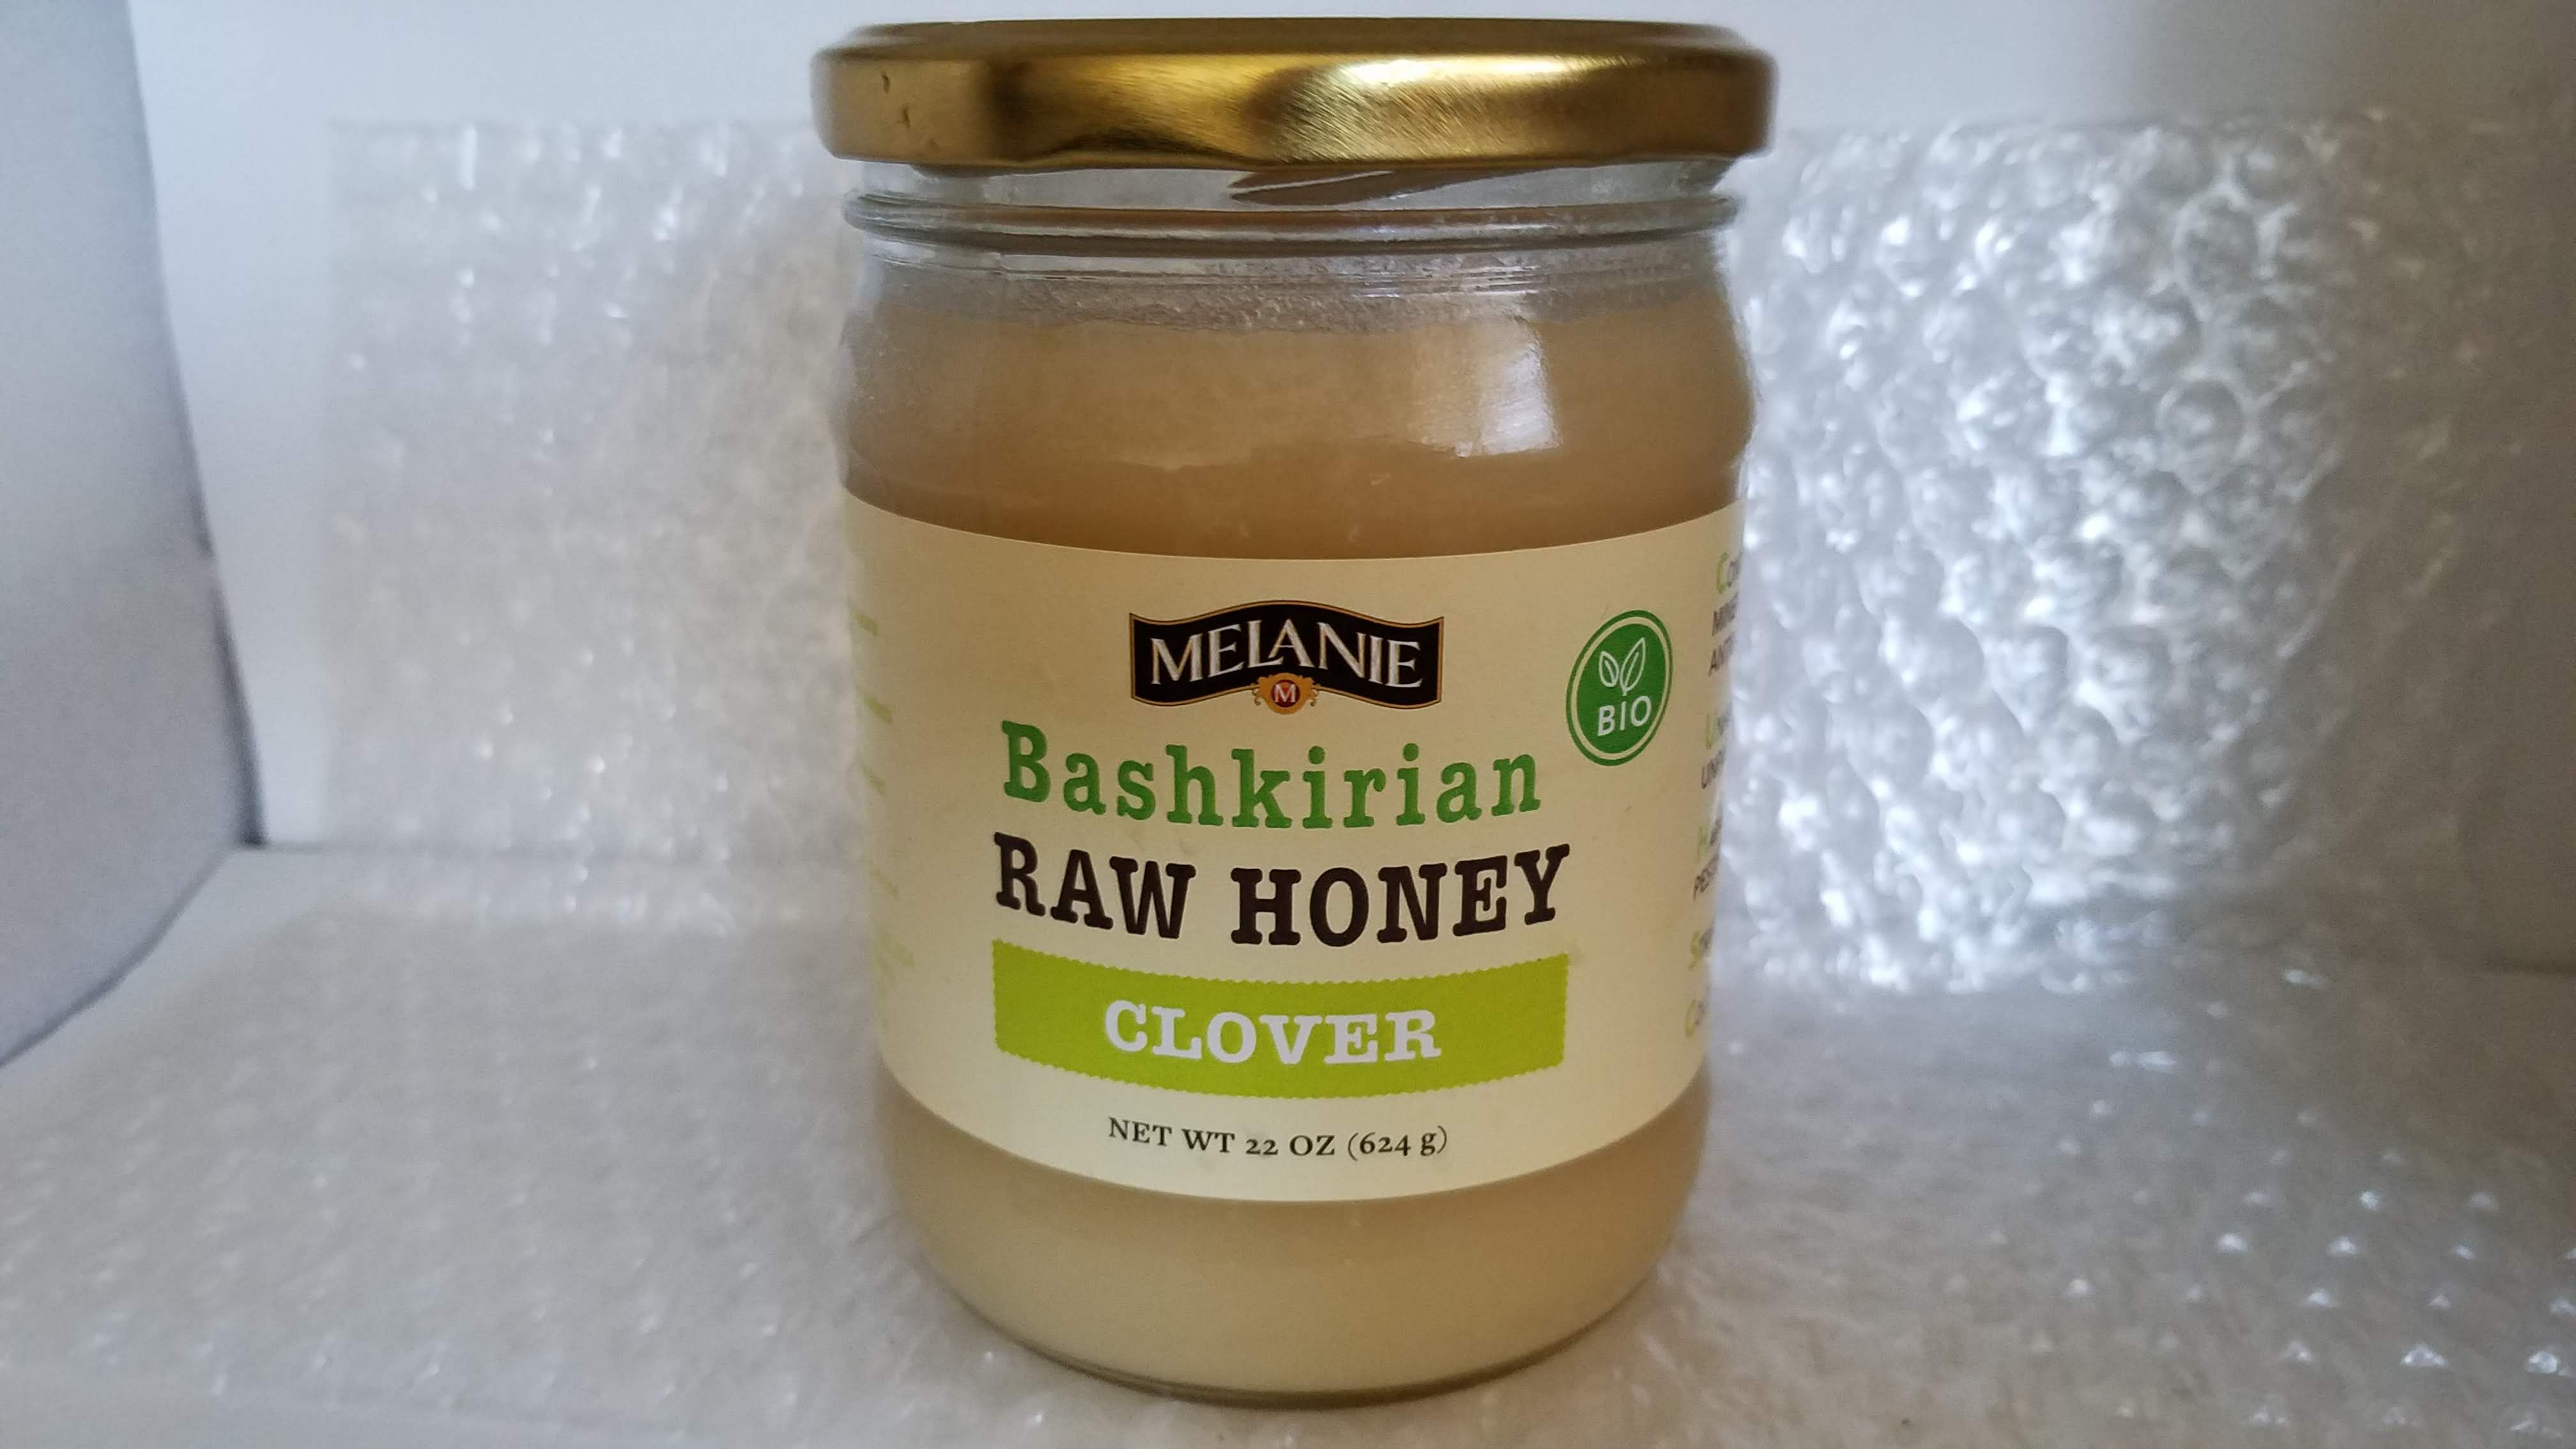 Clover honey is produced from the nectar of clover blossoms